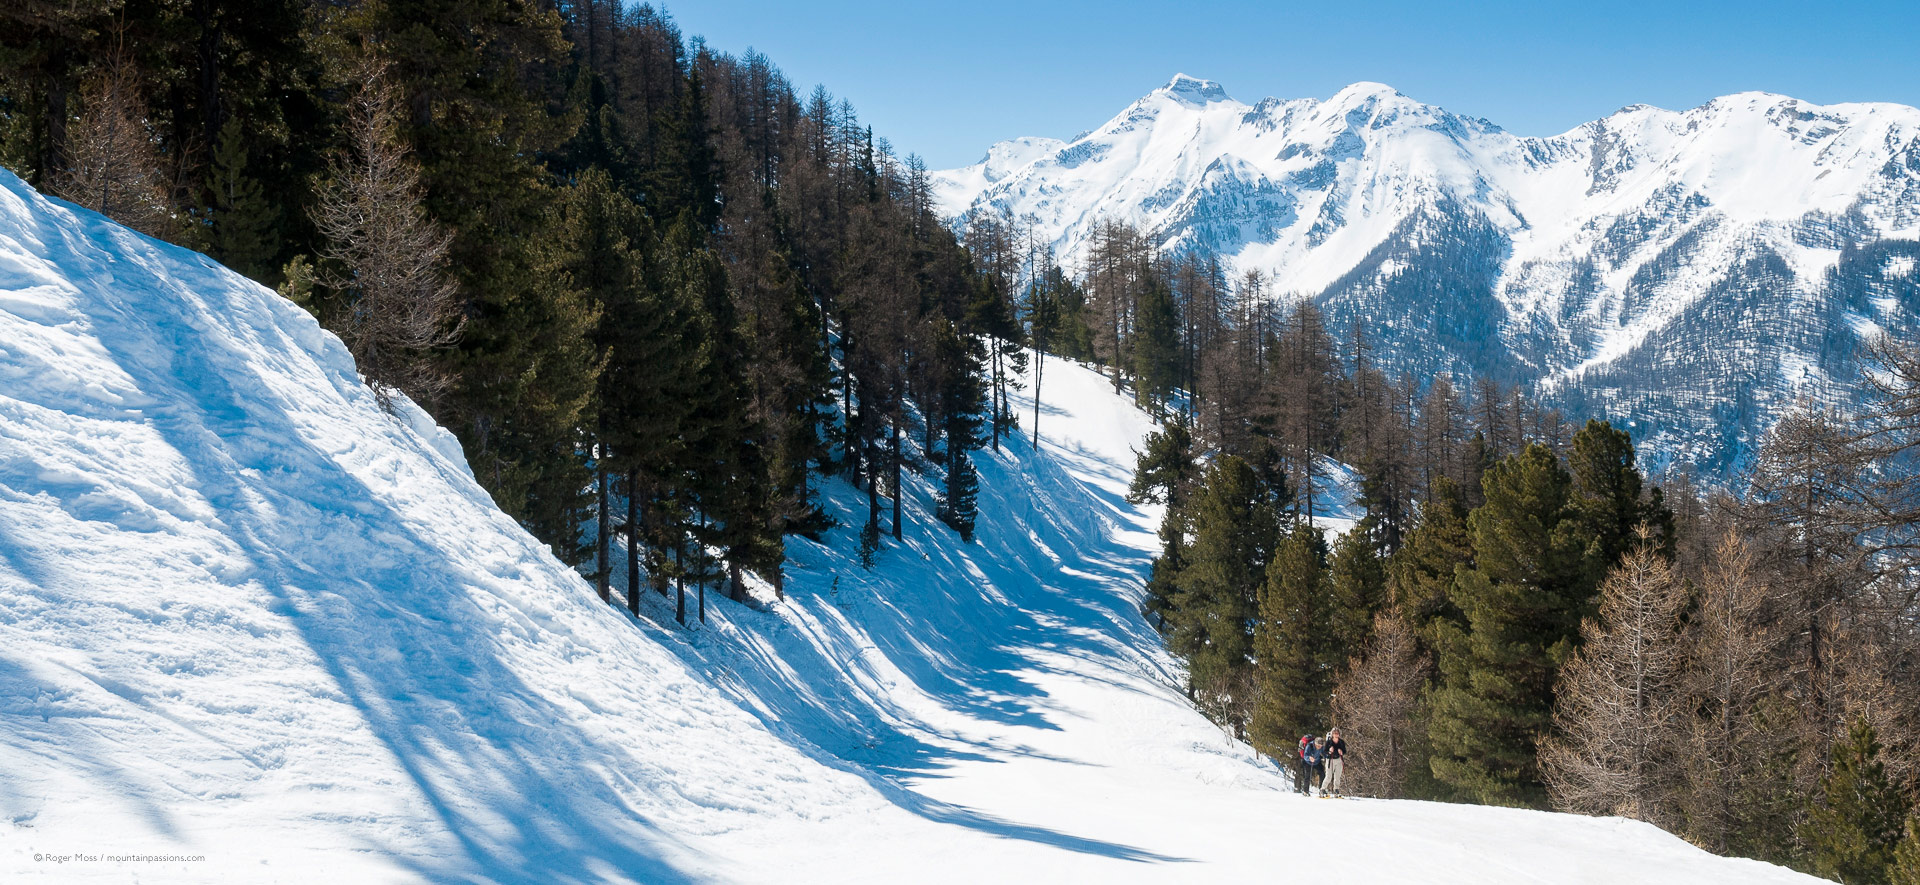 Two walkers beside tree-lined ski piste at Les Orres 1850